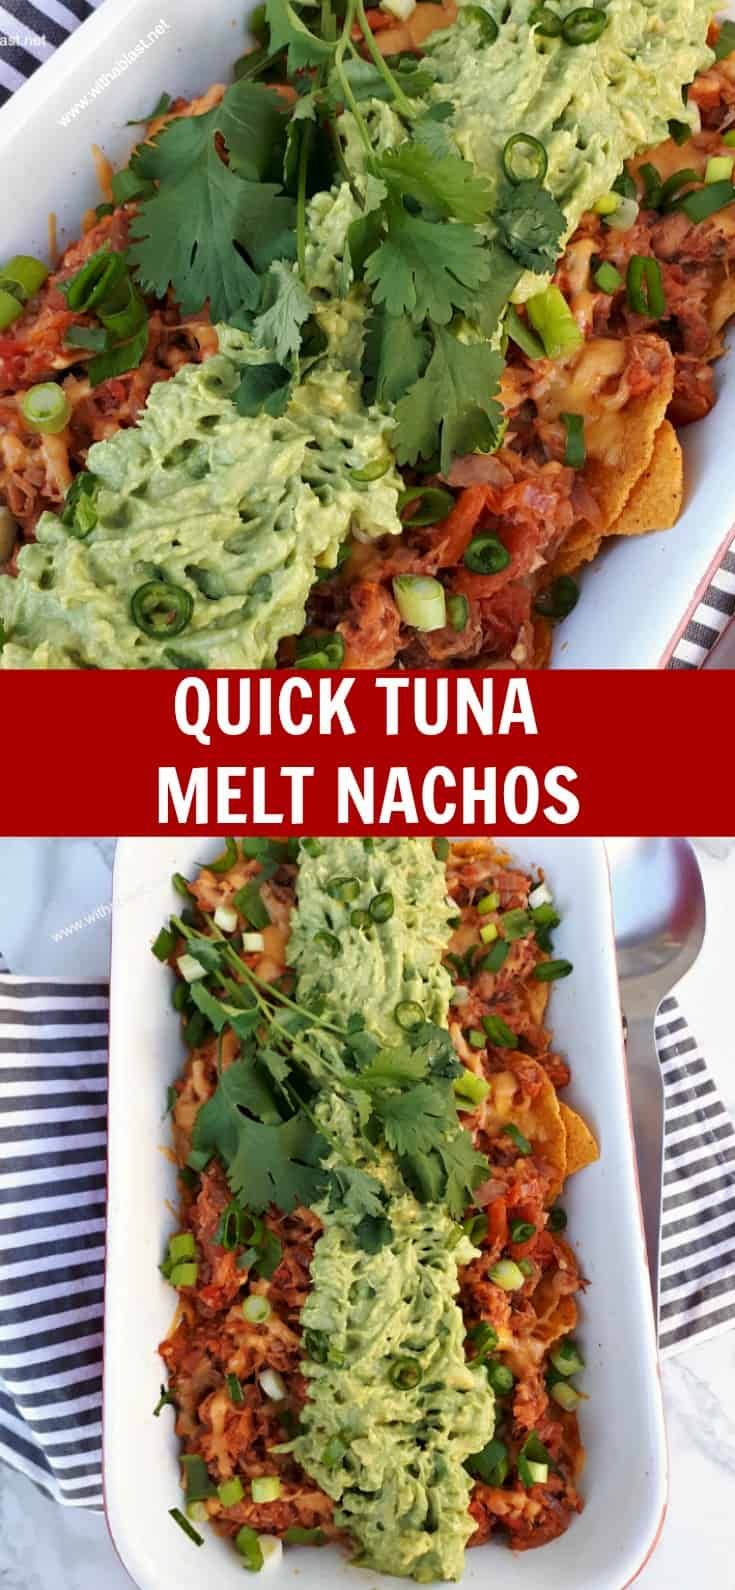 Quick Tuna melt Nachos is a cheesy, tomato rich, quick and easy dish to be served as an appetizer, snack and perfect as a light dinner too #TunaMelt #Nachos #Appetizer #LightDinner #TunaNachos